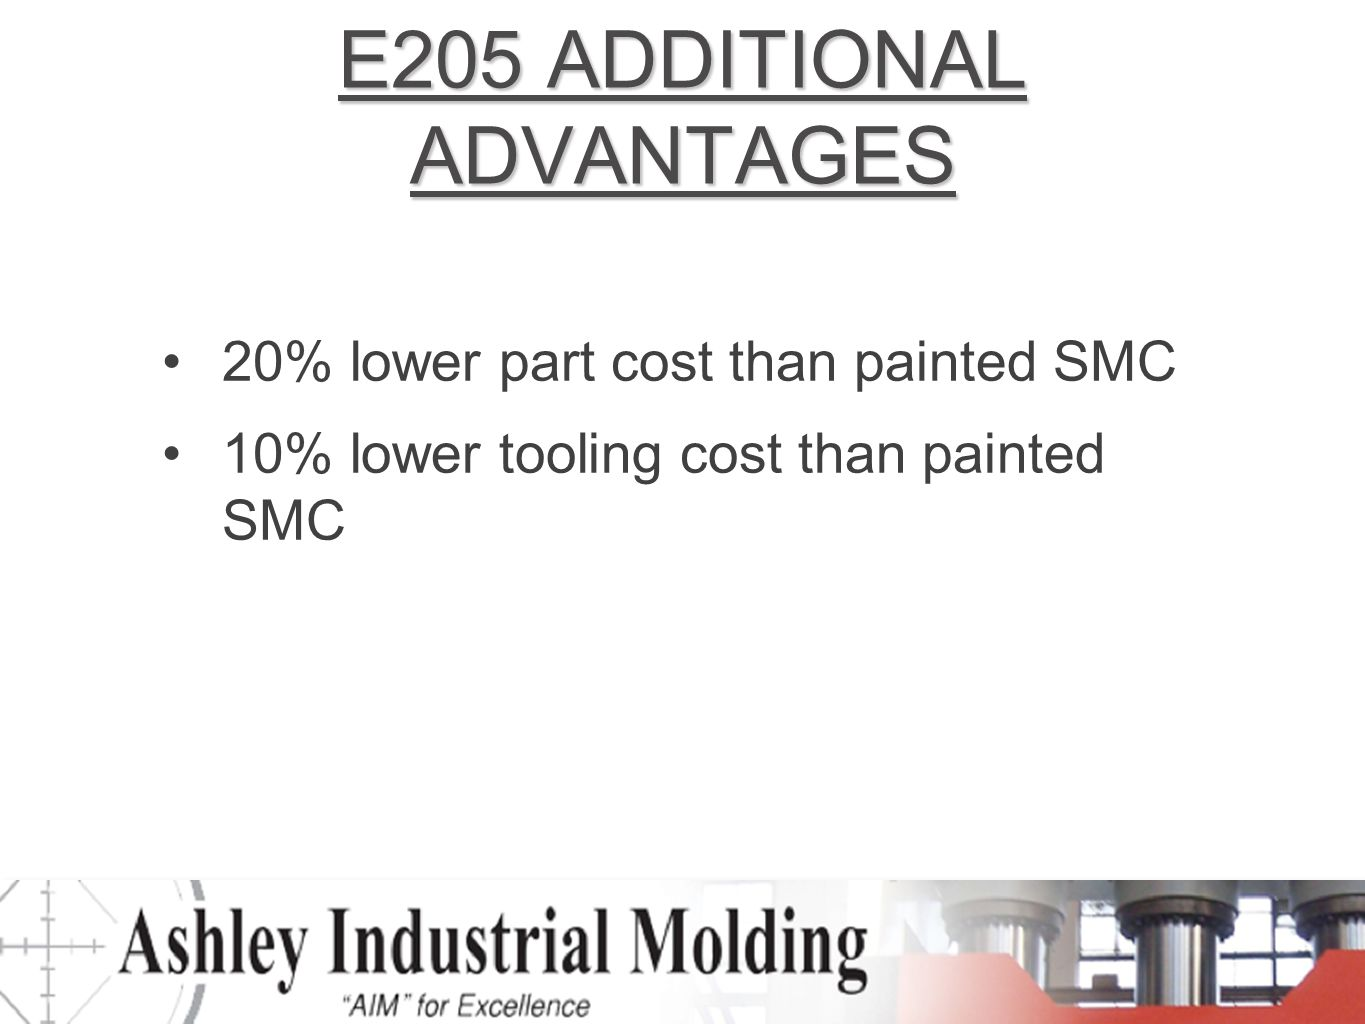 E205 ADDITIONAL ADVANTAGES 20% lower part cost than painted SMC 10% lower tooling cost than painted SMC